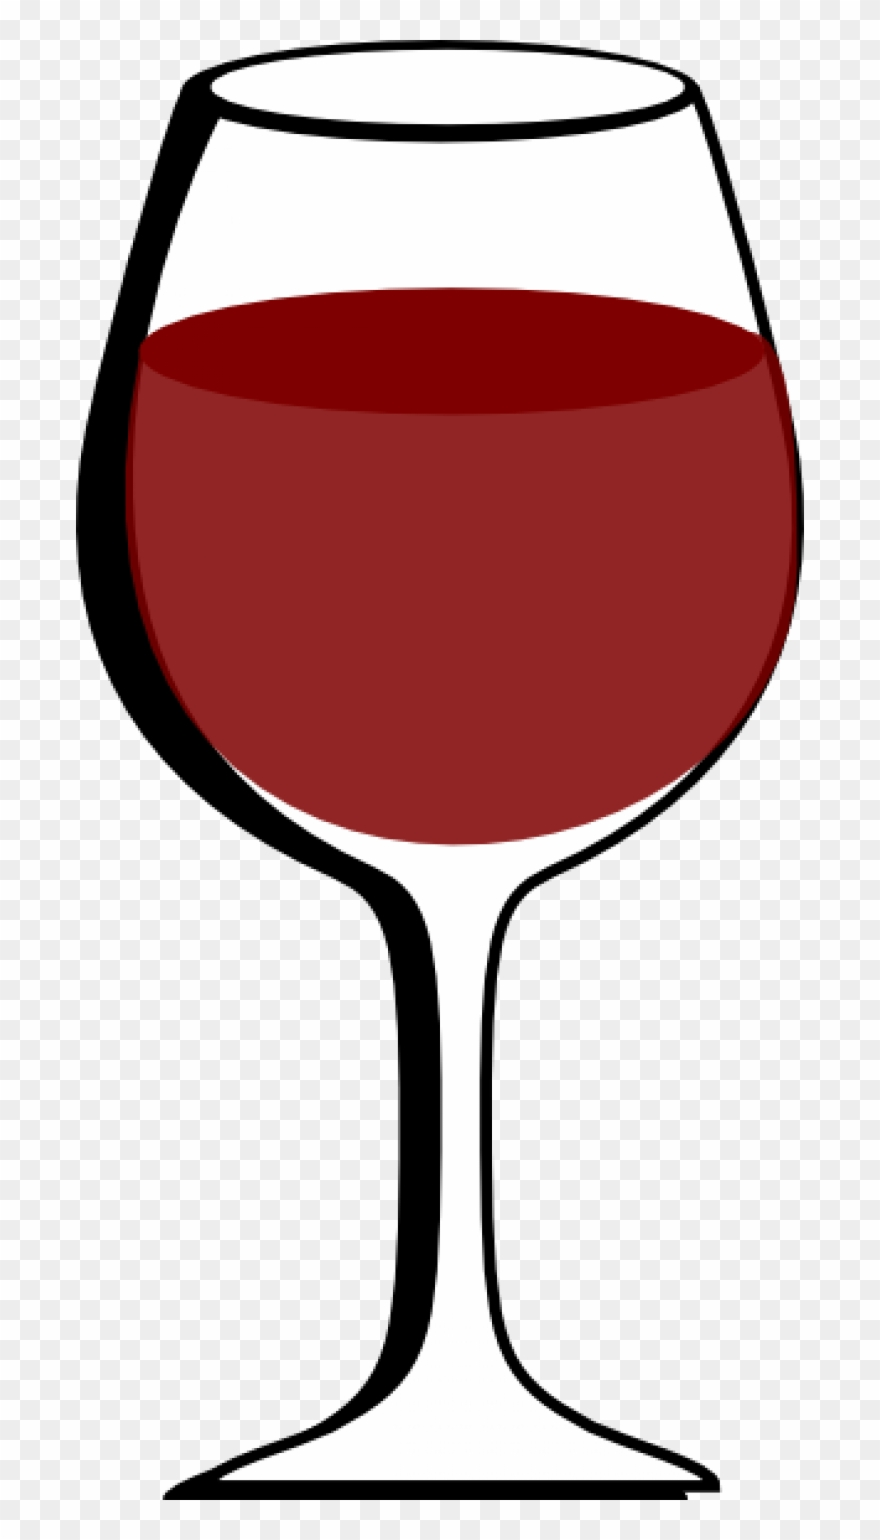 Wine in glass clipart graphic freeuse stock Wine Clip Art - Wine Glass Clipart Png Transparent Png (#197477 ... graphic freeuse stock